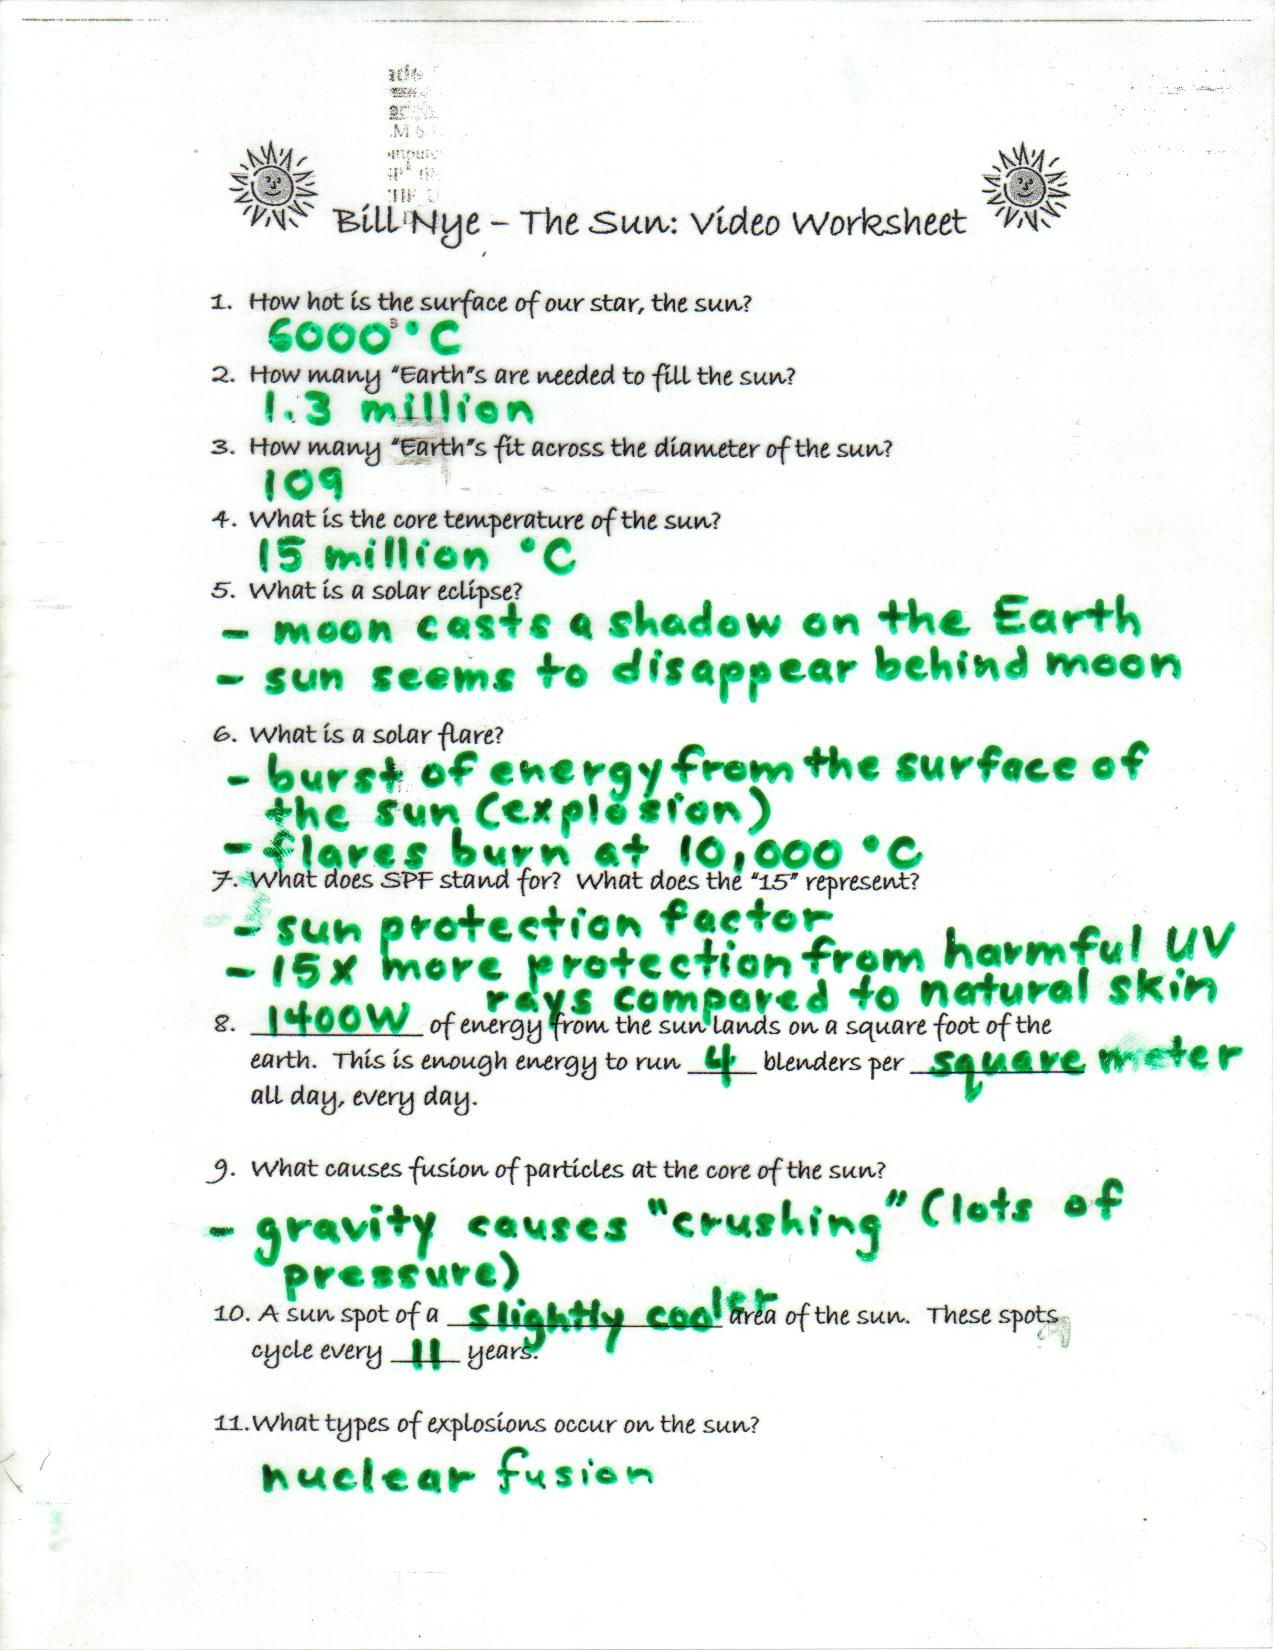 Bill Nye The Science Guy Worksheet Answers